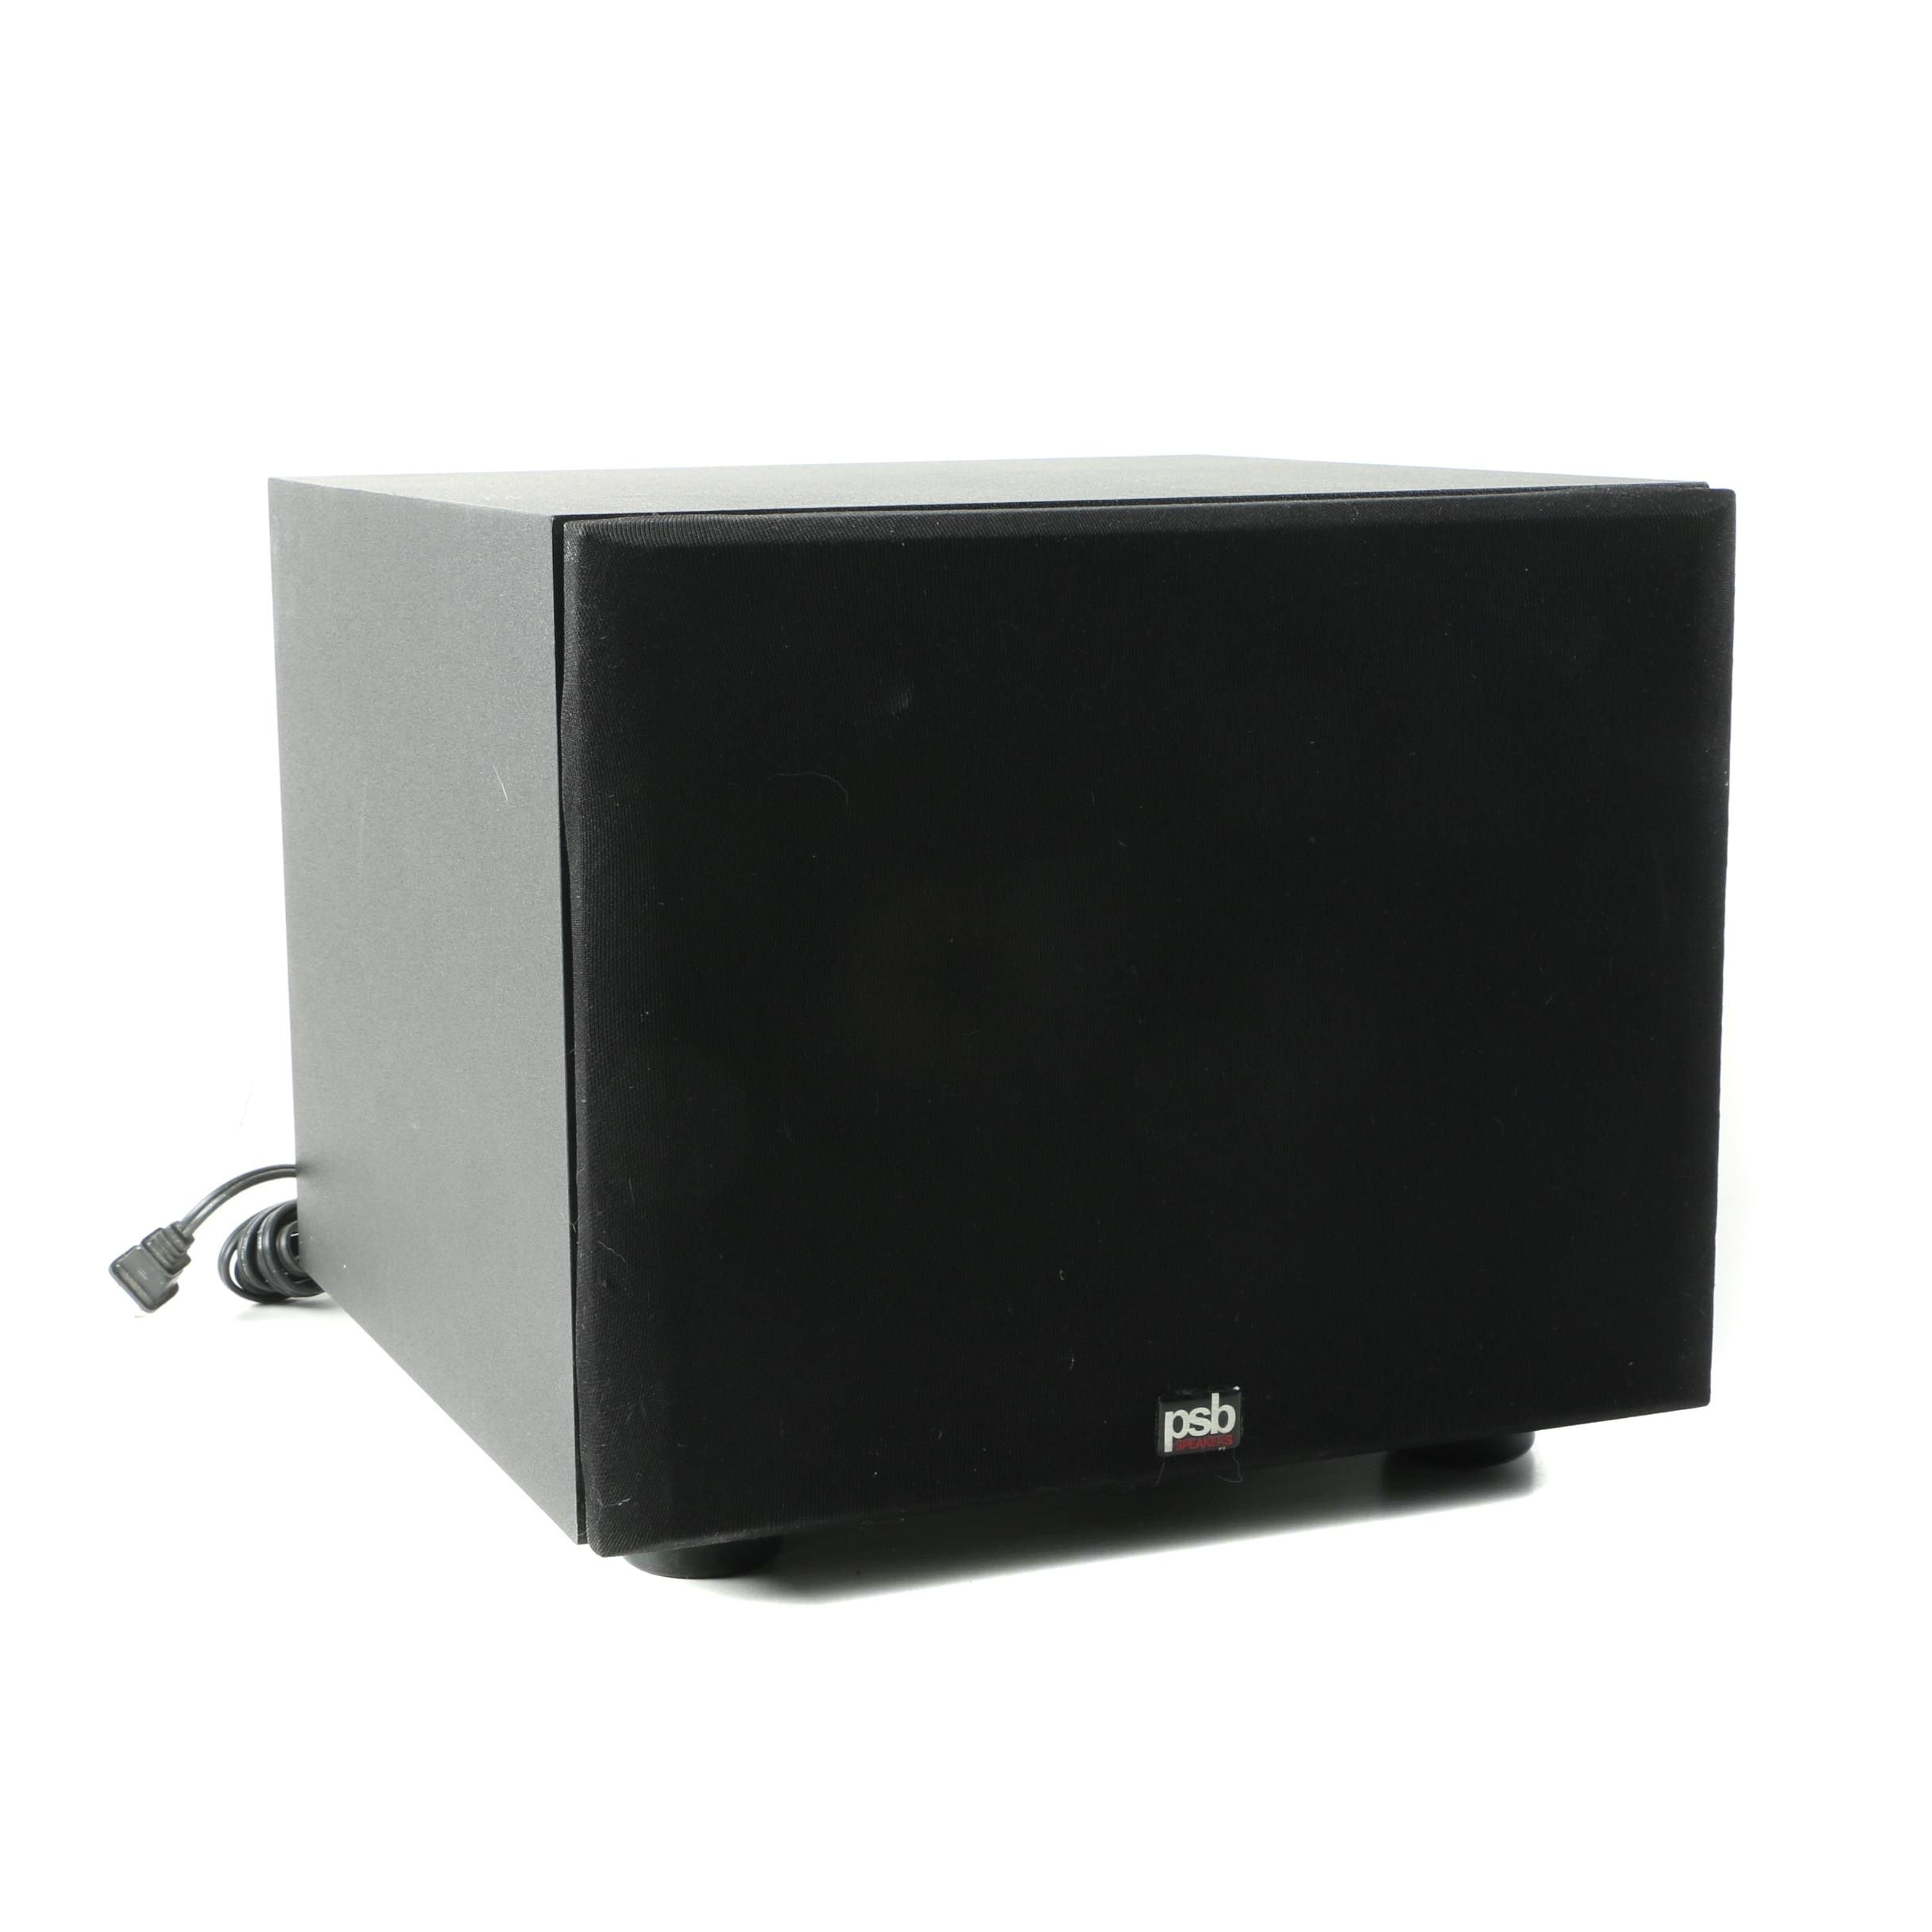 PSB Speakers Alpha SubSonic 1 Powered Subwoofer